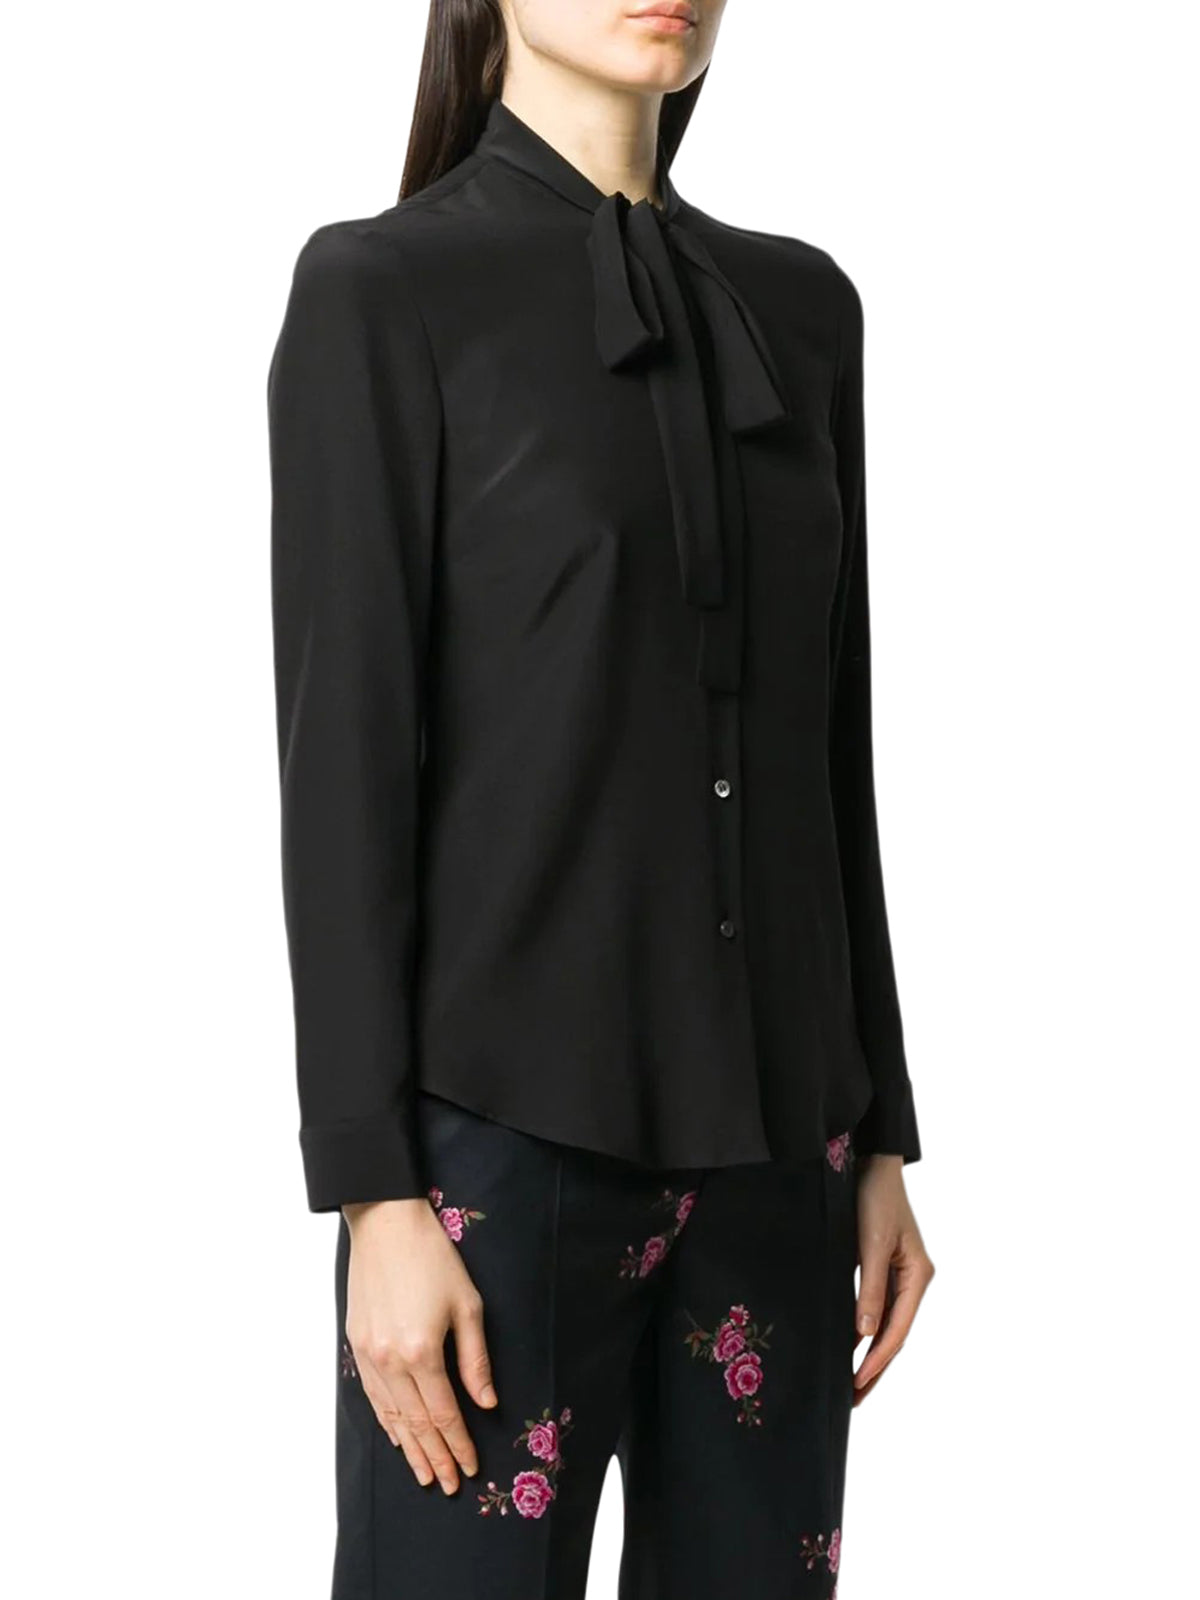 pussy-bow style silk shirt